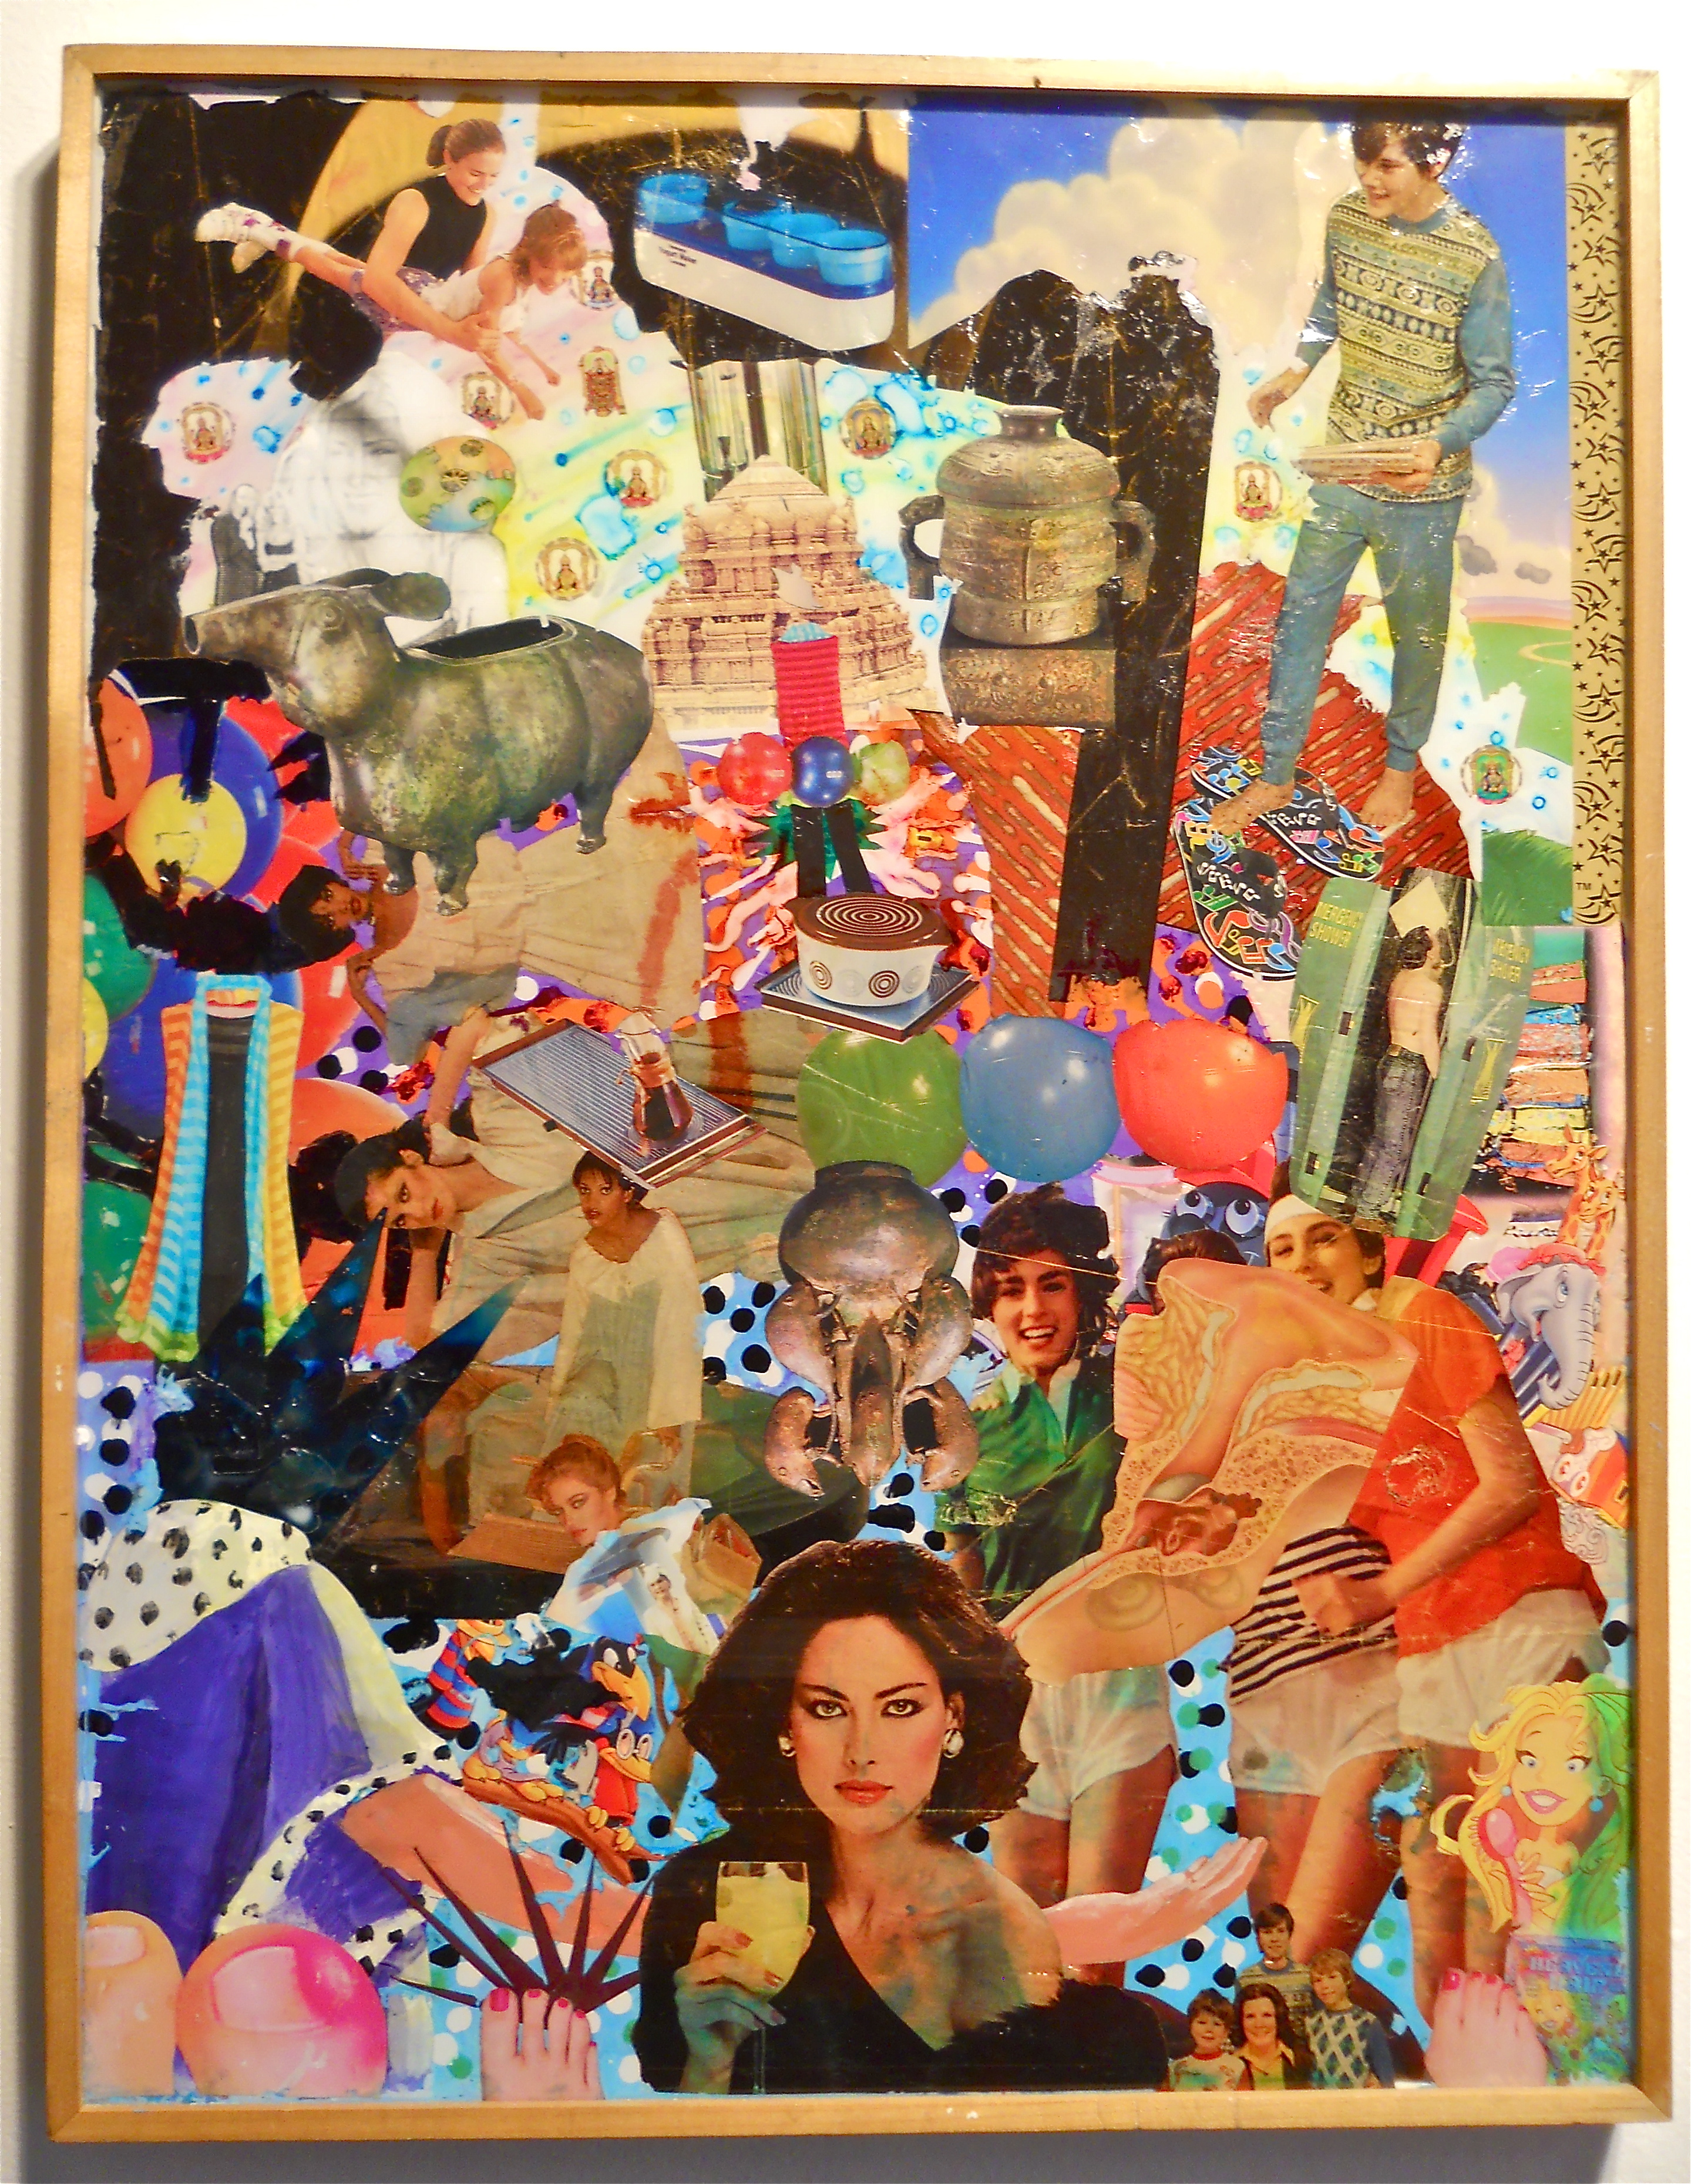 """Cheers""  2013, Collage-painting on Plexiglass mounted in wood frame, for sale; $400"